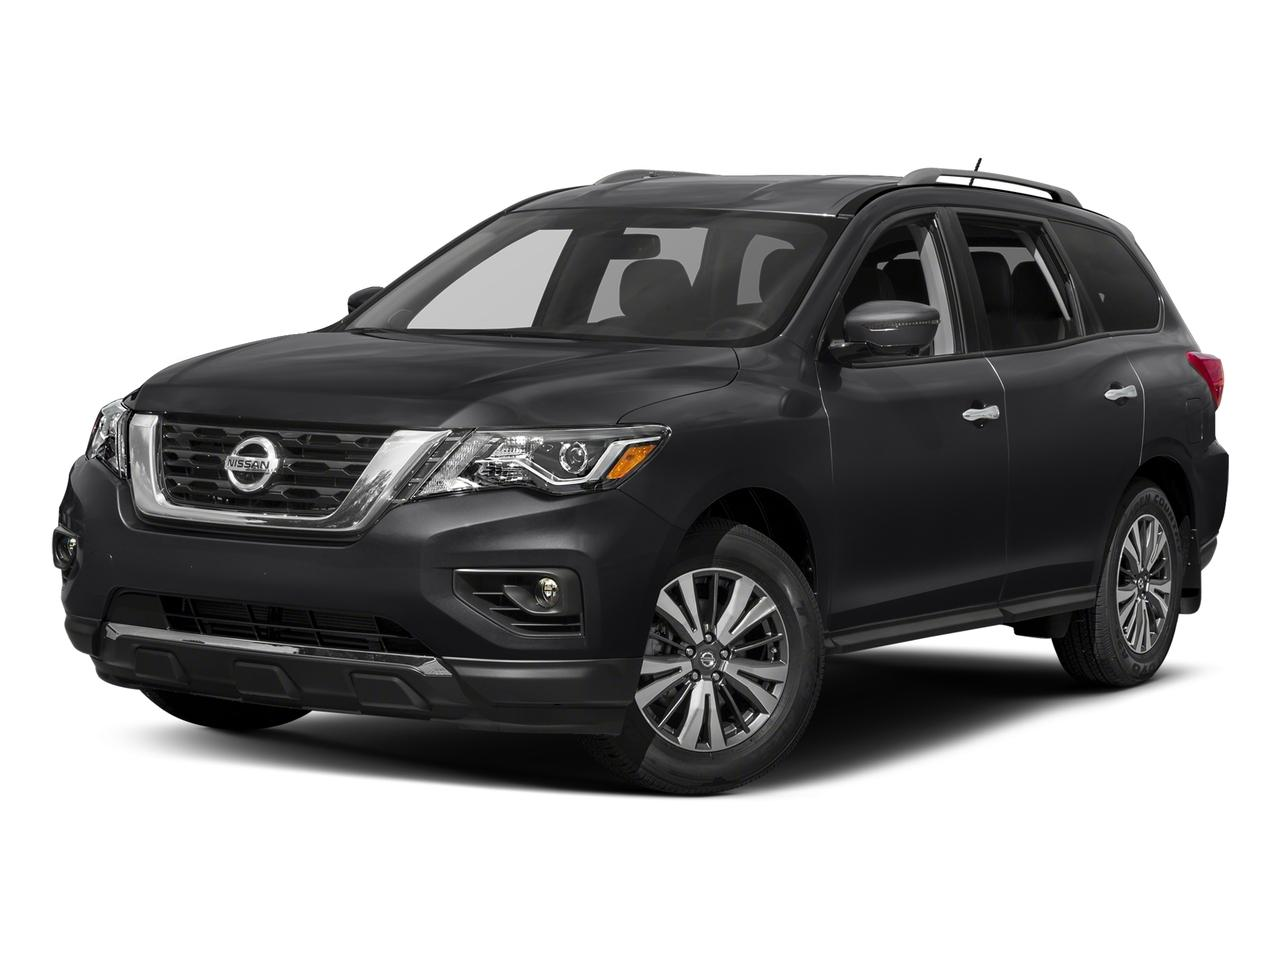 2018 Nissan Pathfinder Vehicle Photo in Willow Grove, PA 19090